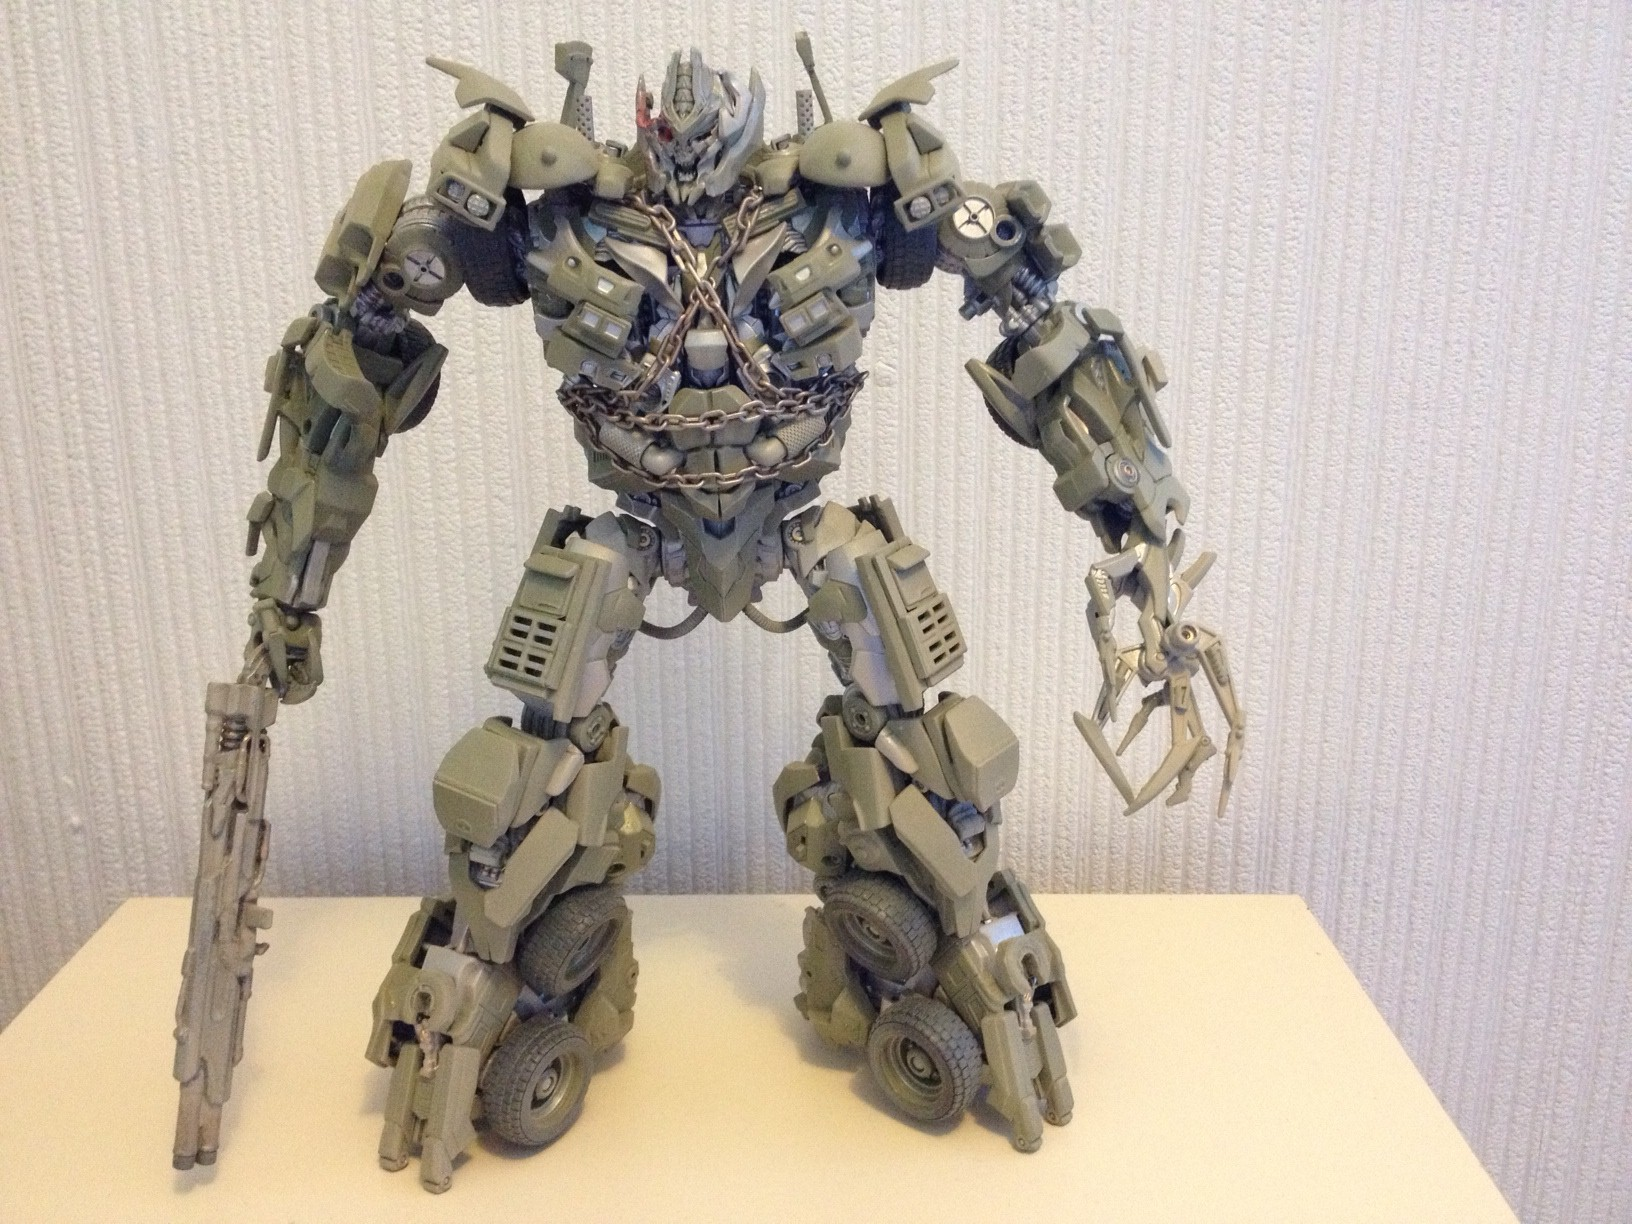 Transformers Dotm Megatron Transformers Dotm Leader Class